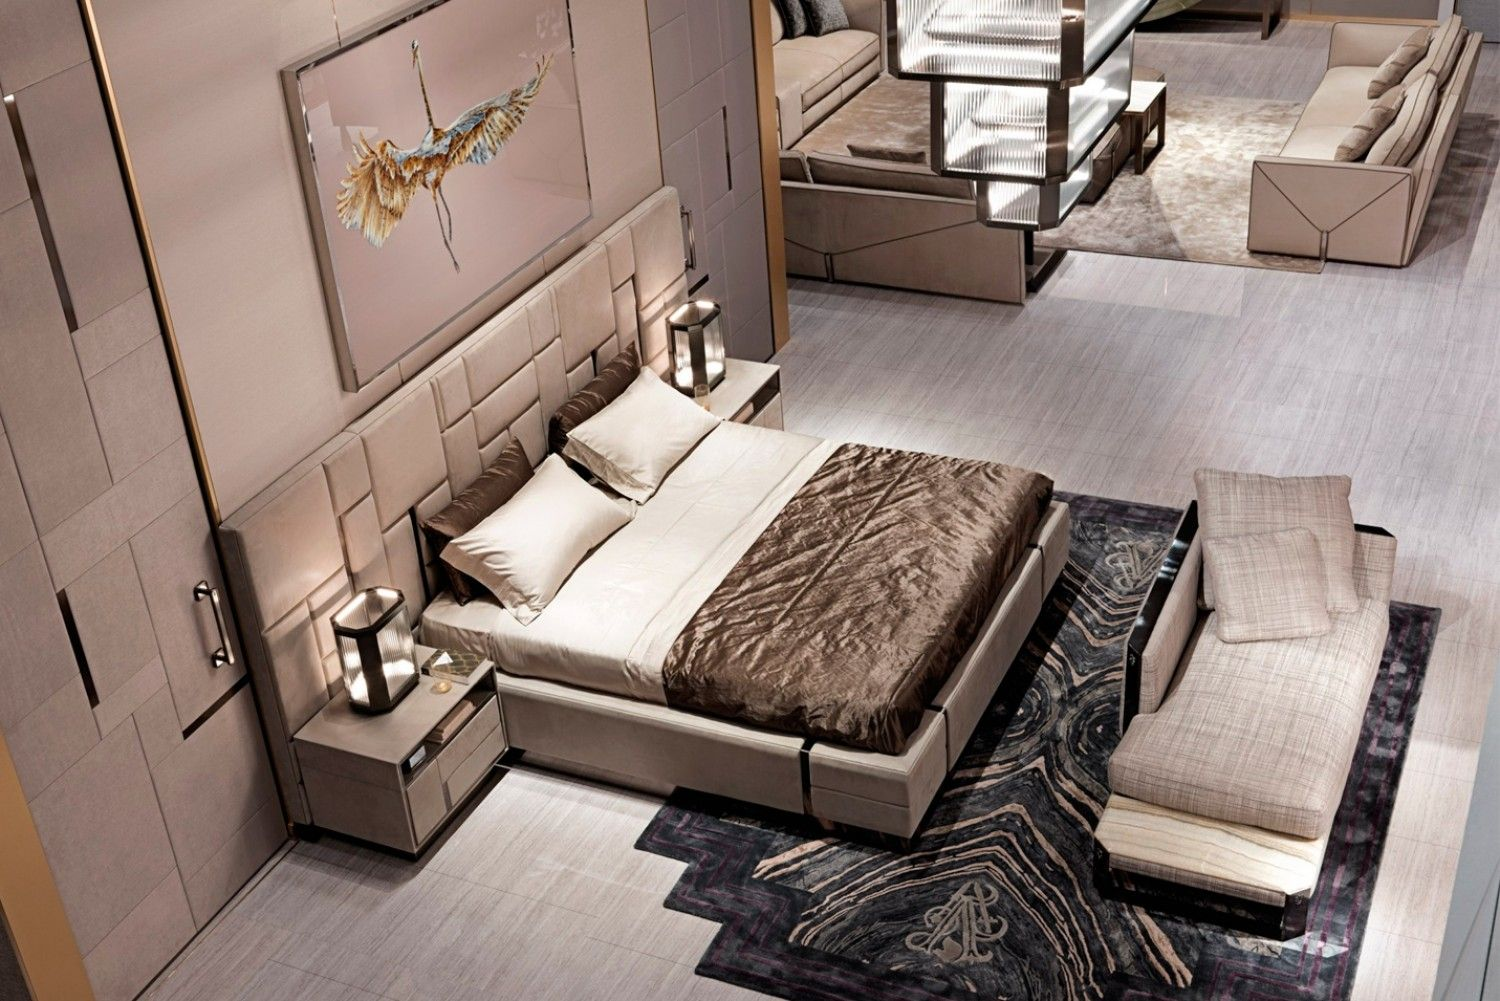 Transform your bedroom into a high end, glamorous boudoir